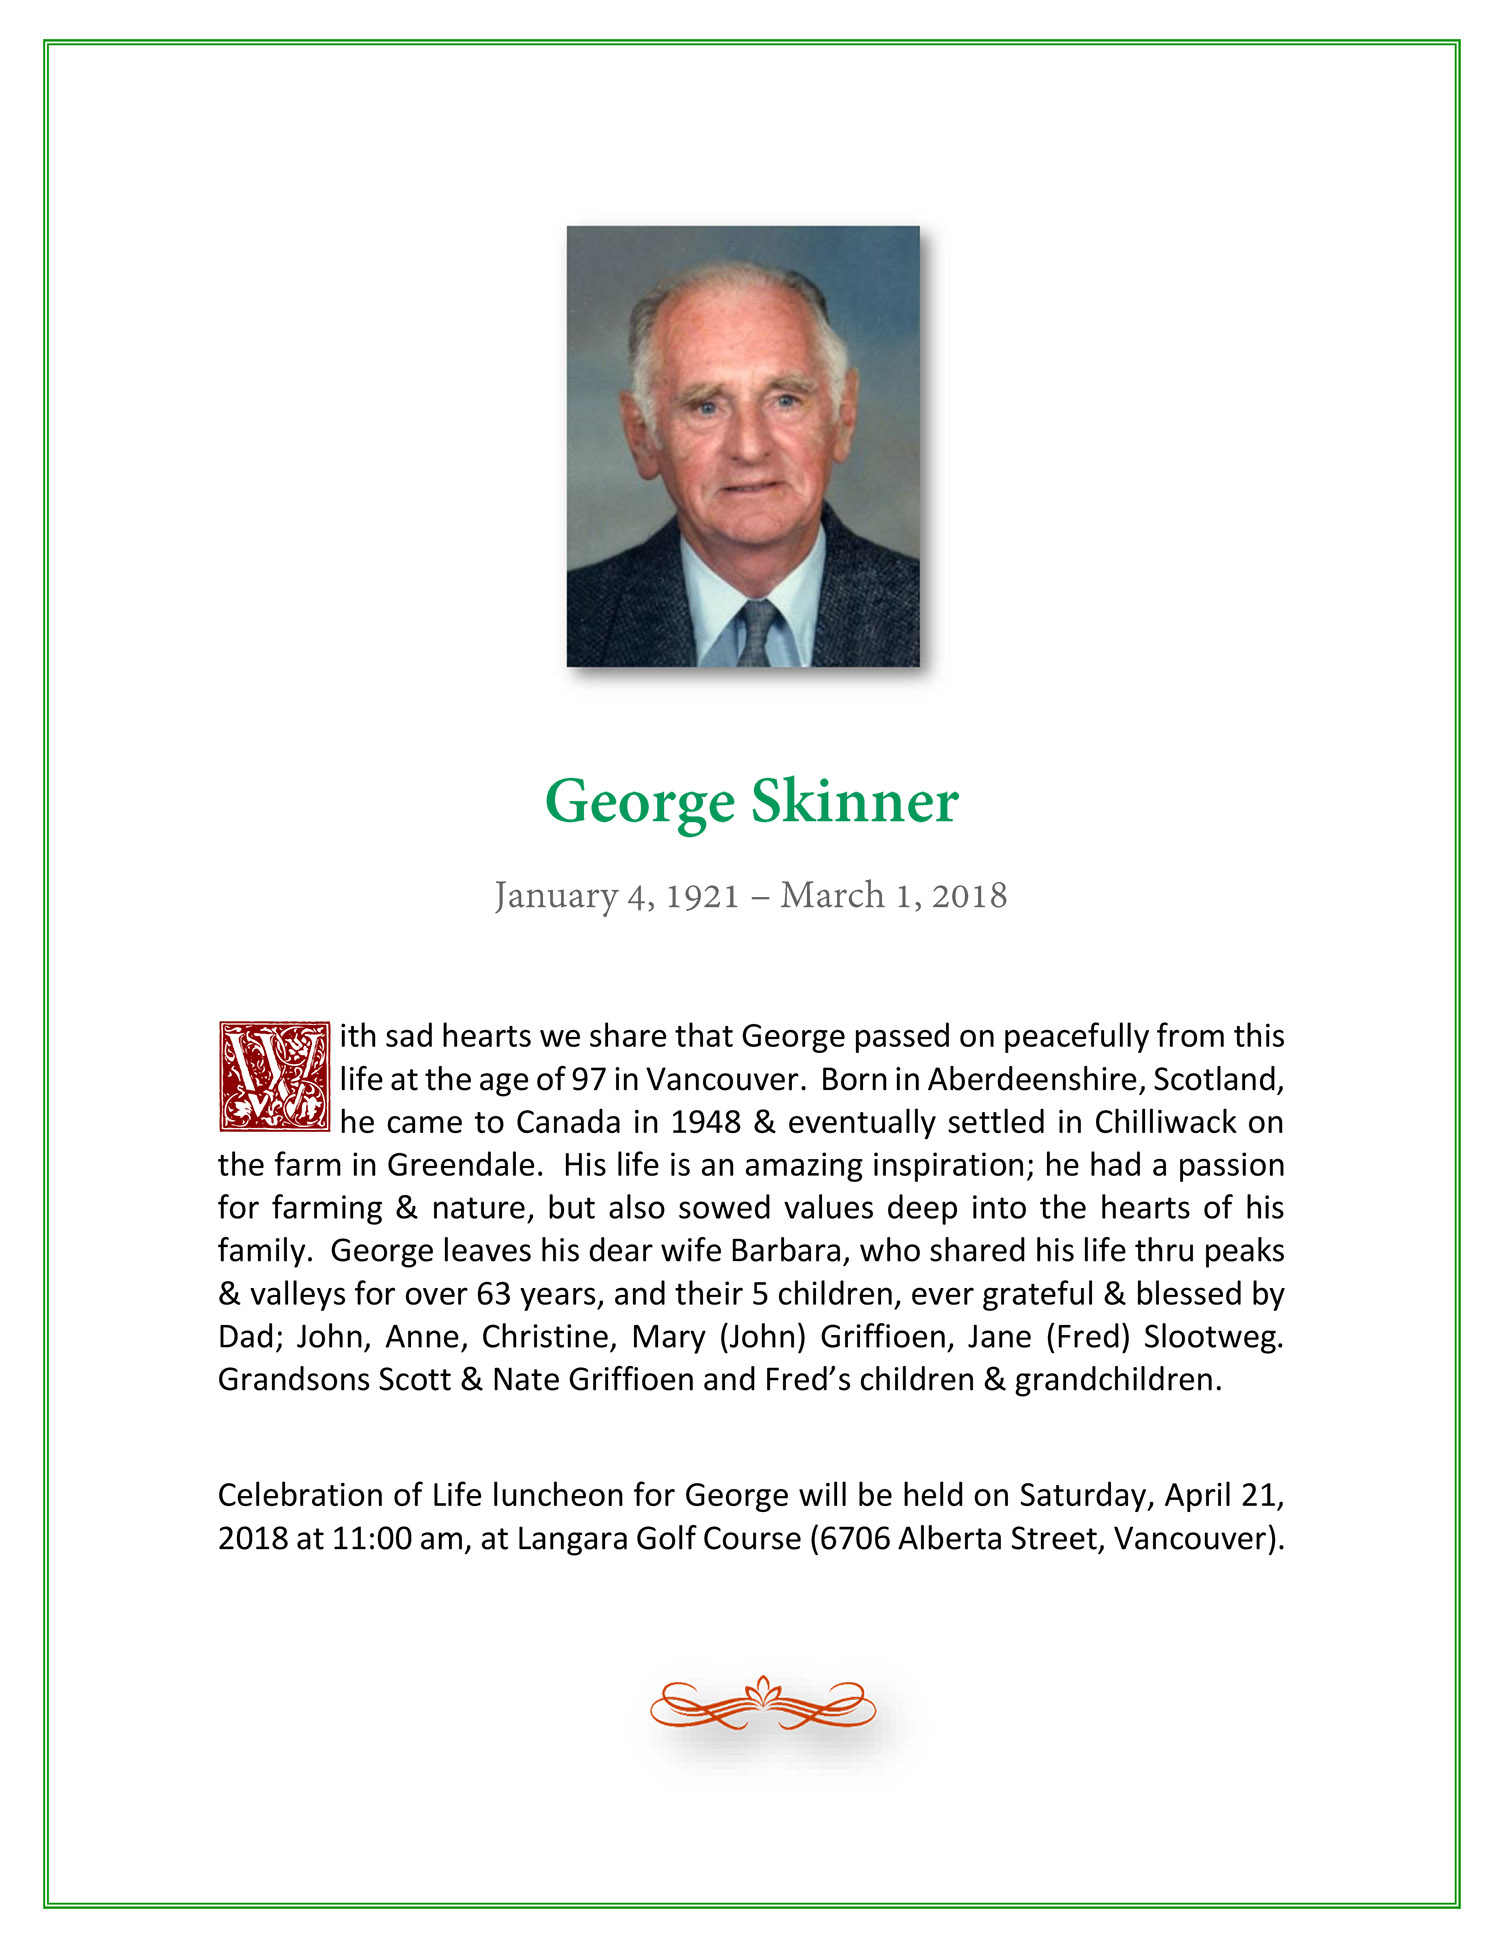 Obituary for George Skinner